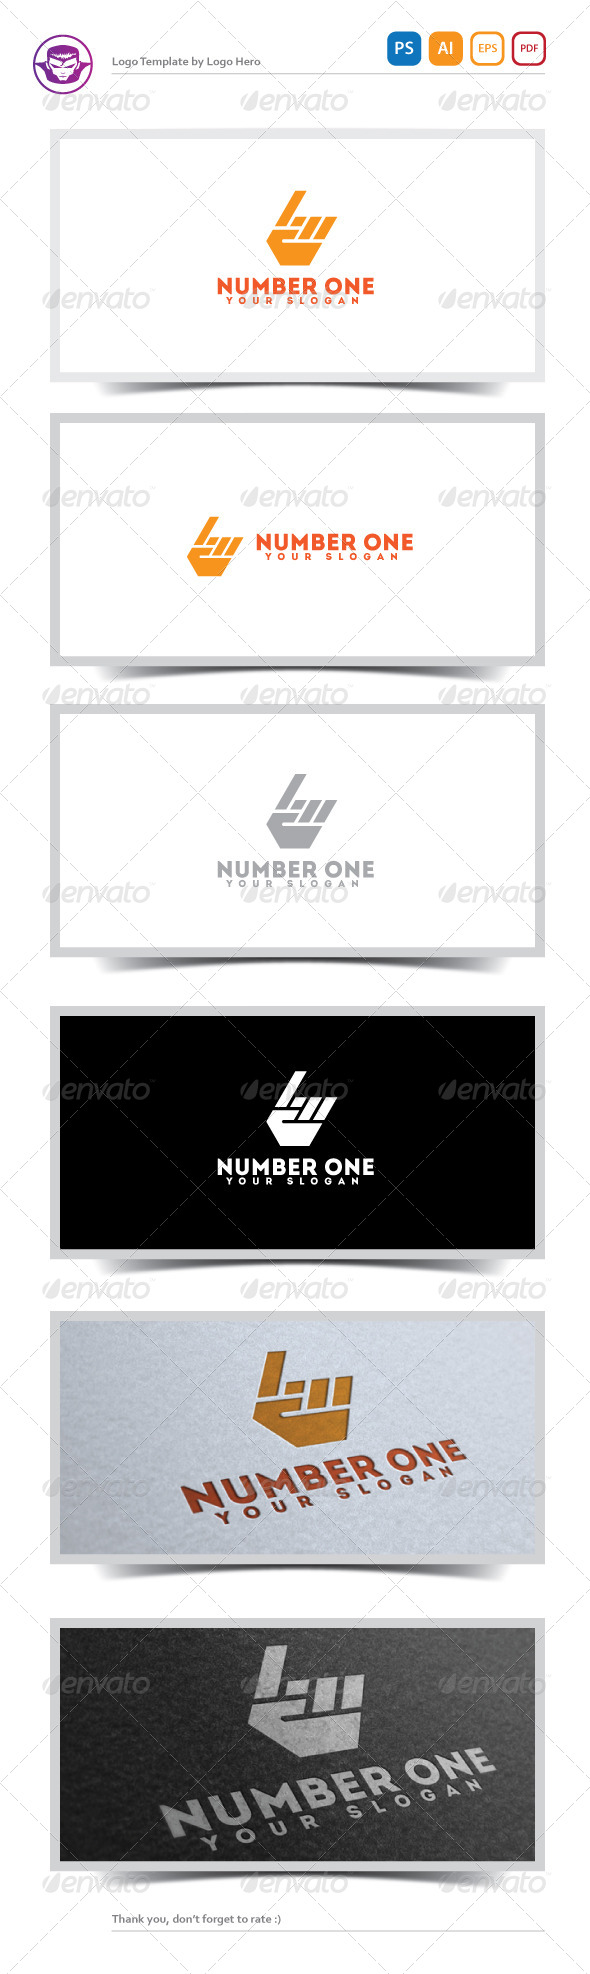 GraphicRiver Number One Logo Template 5181864